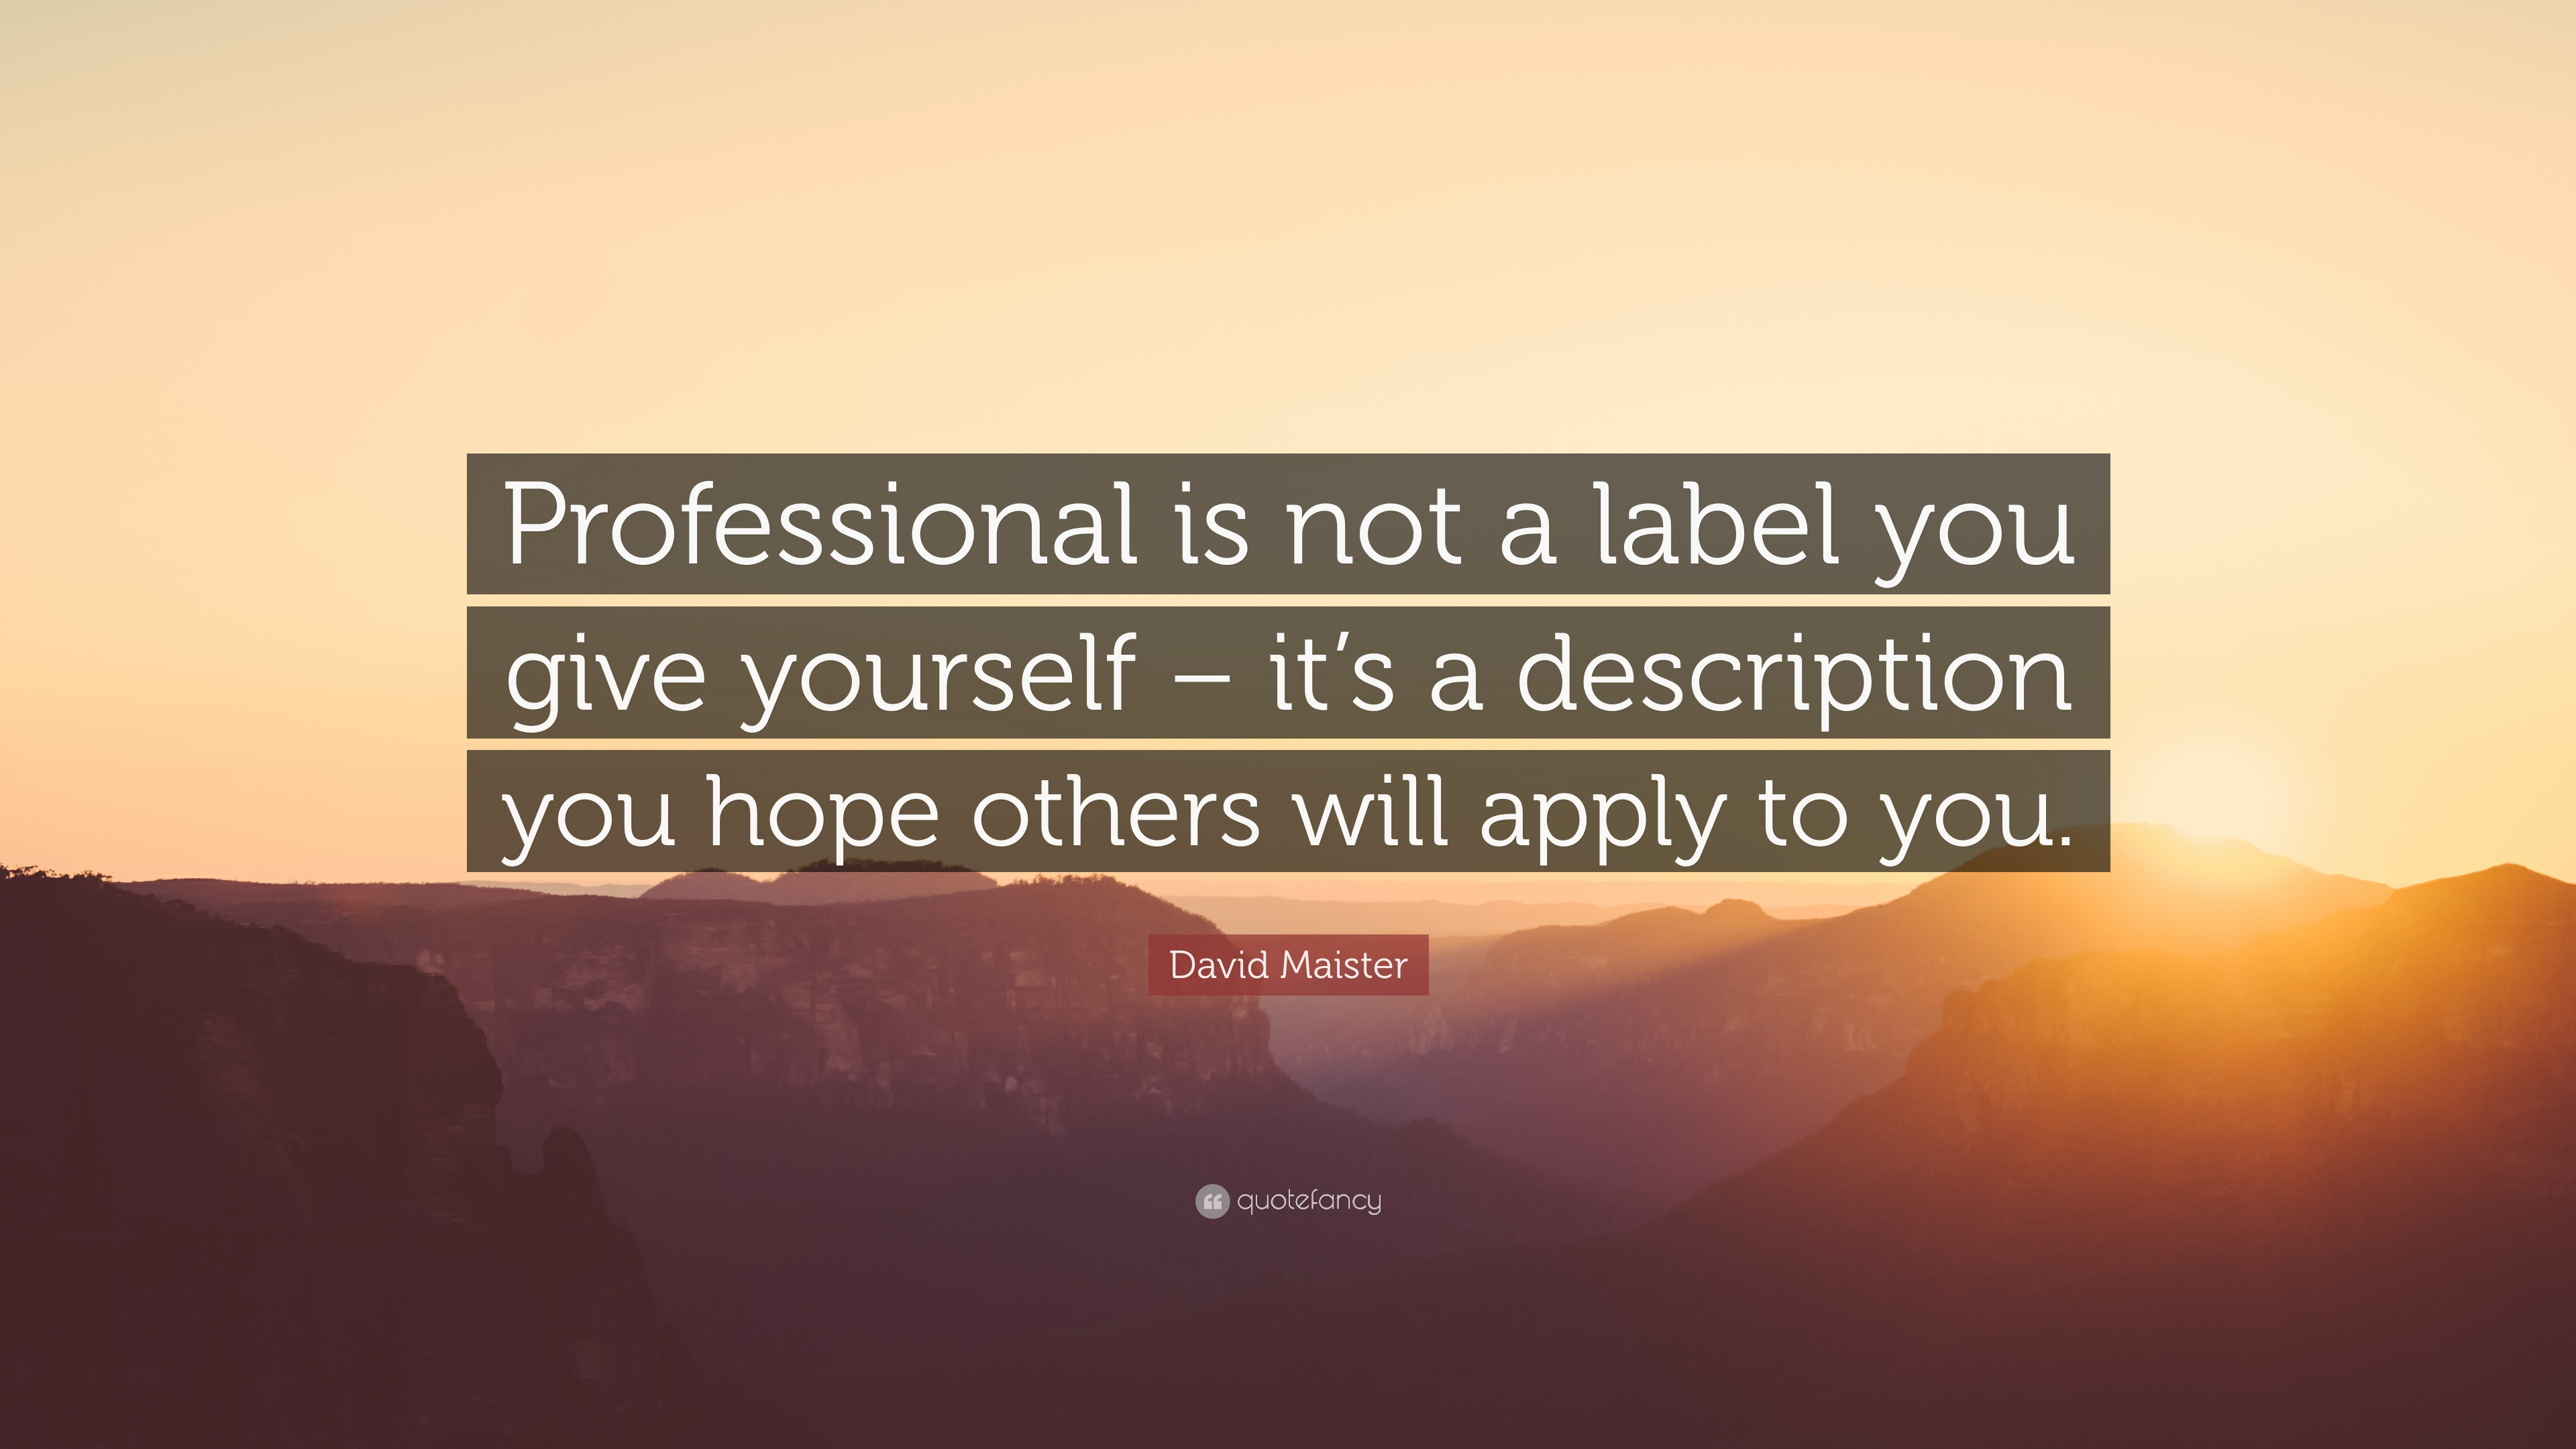 Professionalism Quotes | David Maister Quote Professional Is Not A Label You Give Yourself